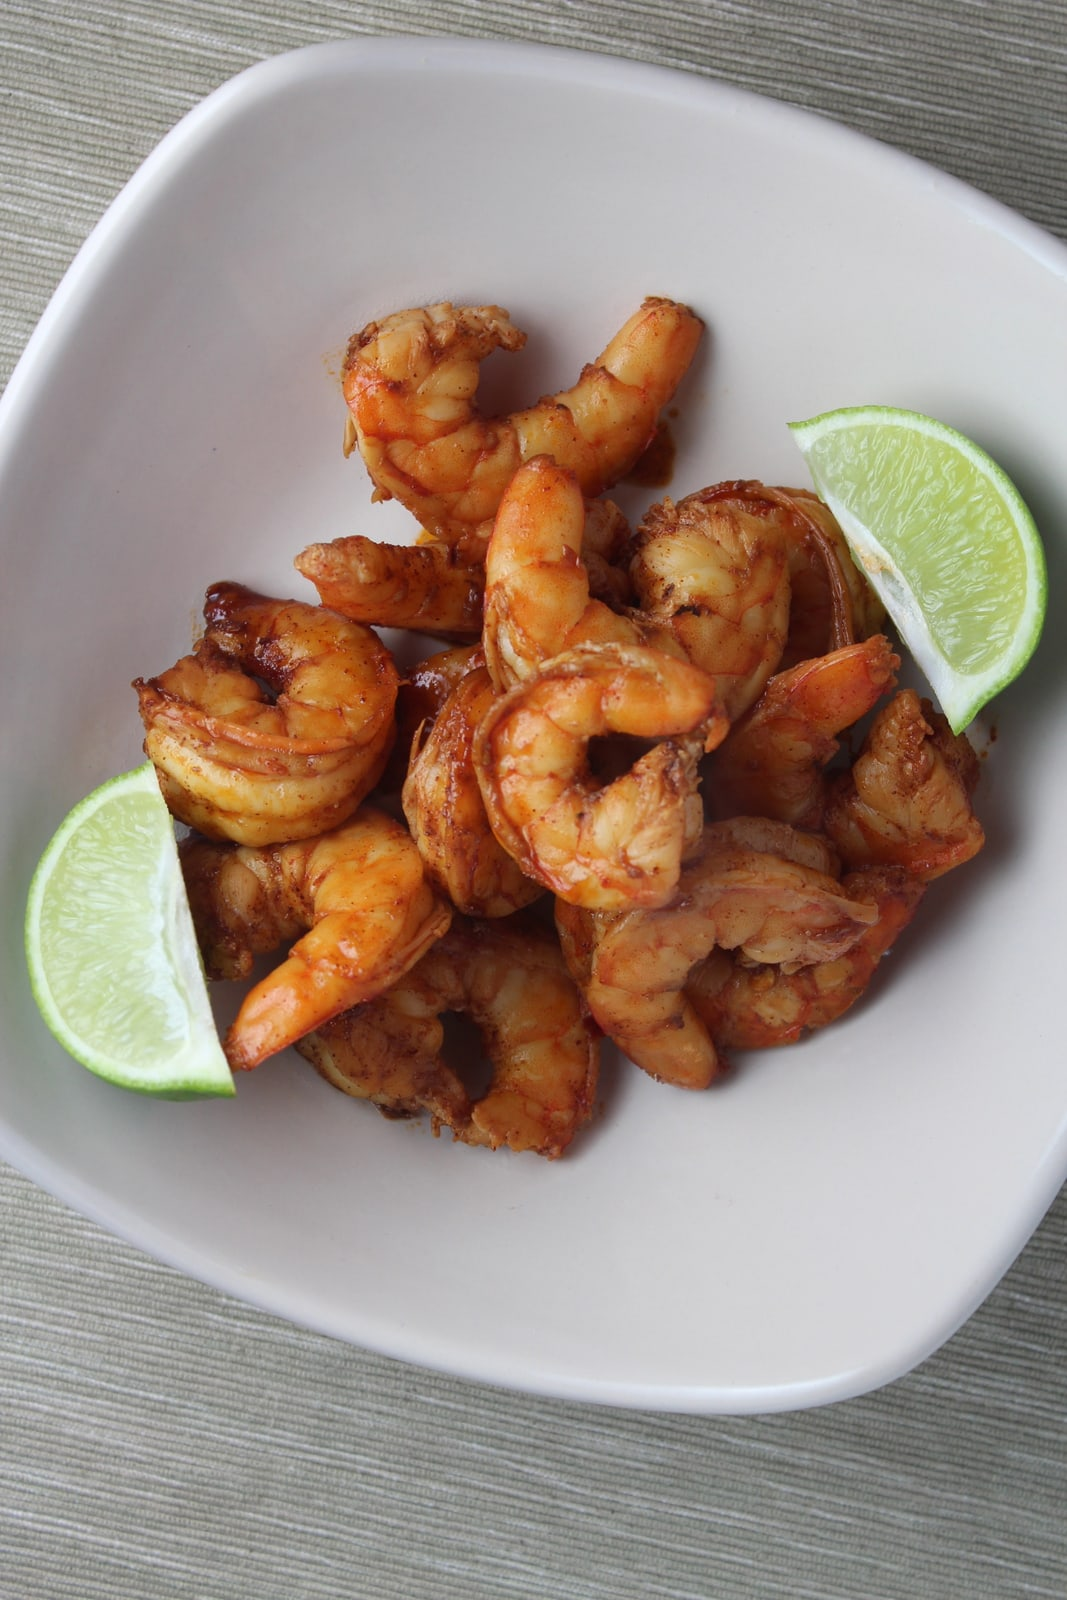 chili lime shrimp, garlic shrimp, chili lime garlic shrimp, grilled shrimp, mexican shrimp, spicy shrimp, recipes, food, lime shrimp recipe, shrimp marinade recipe